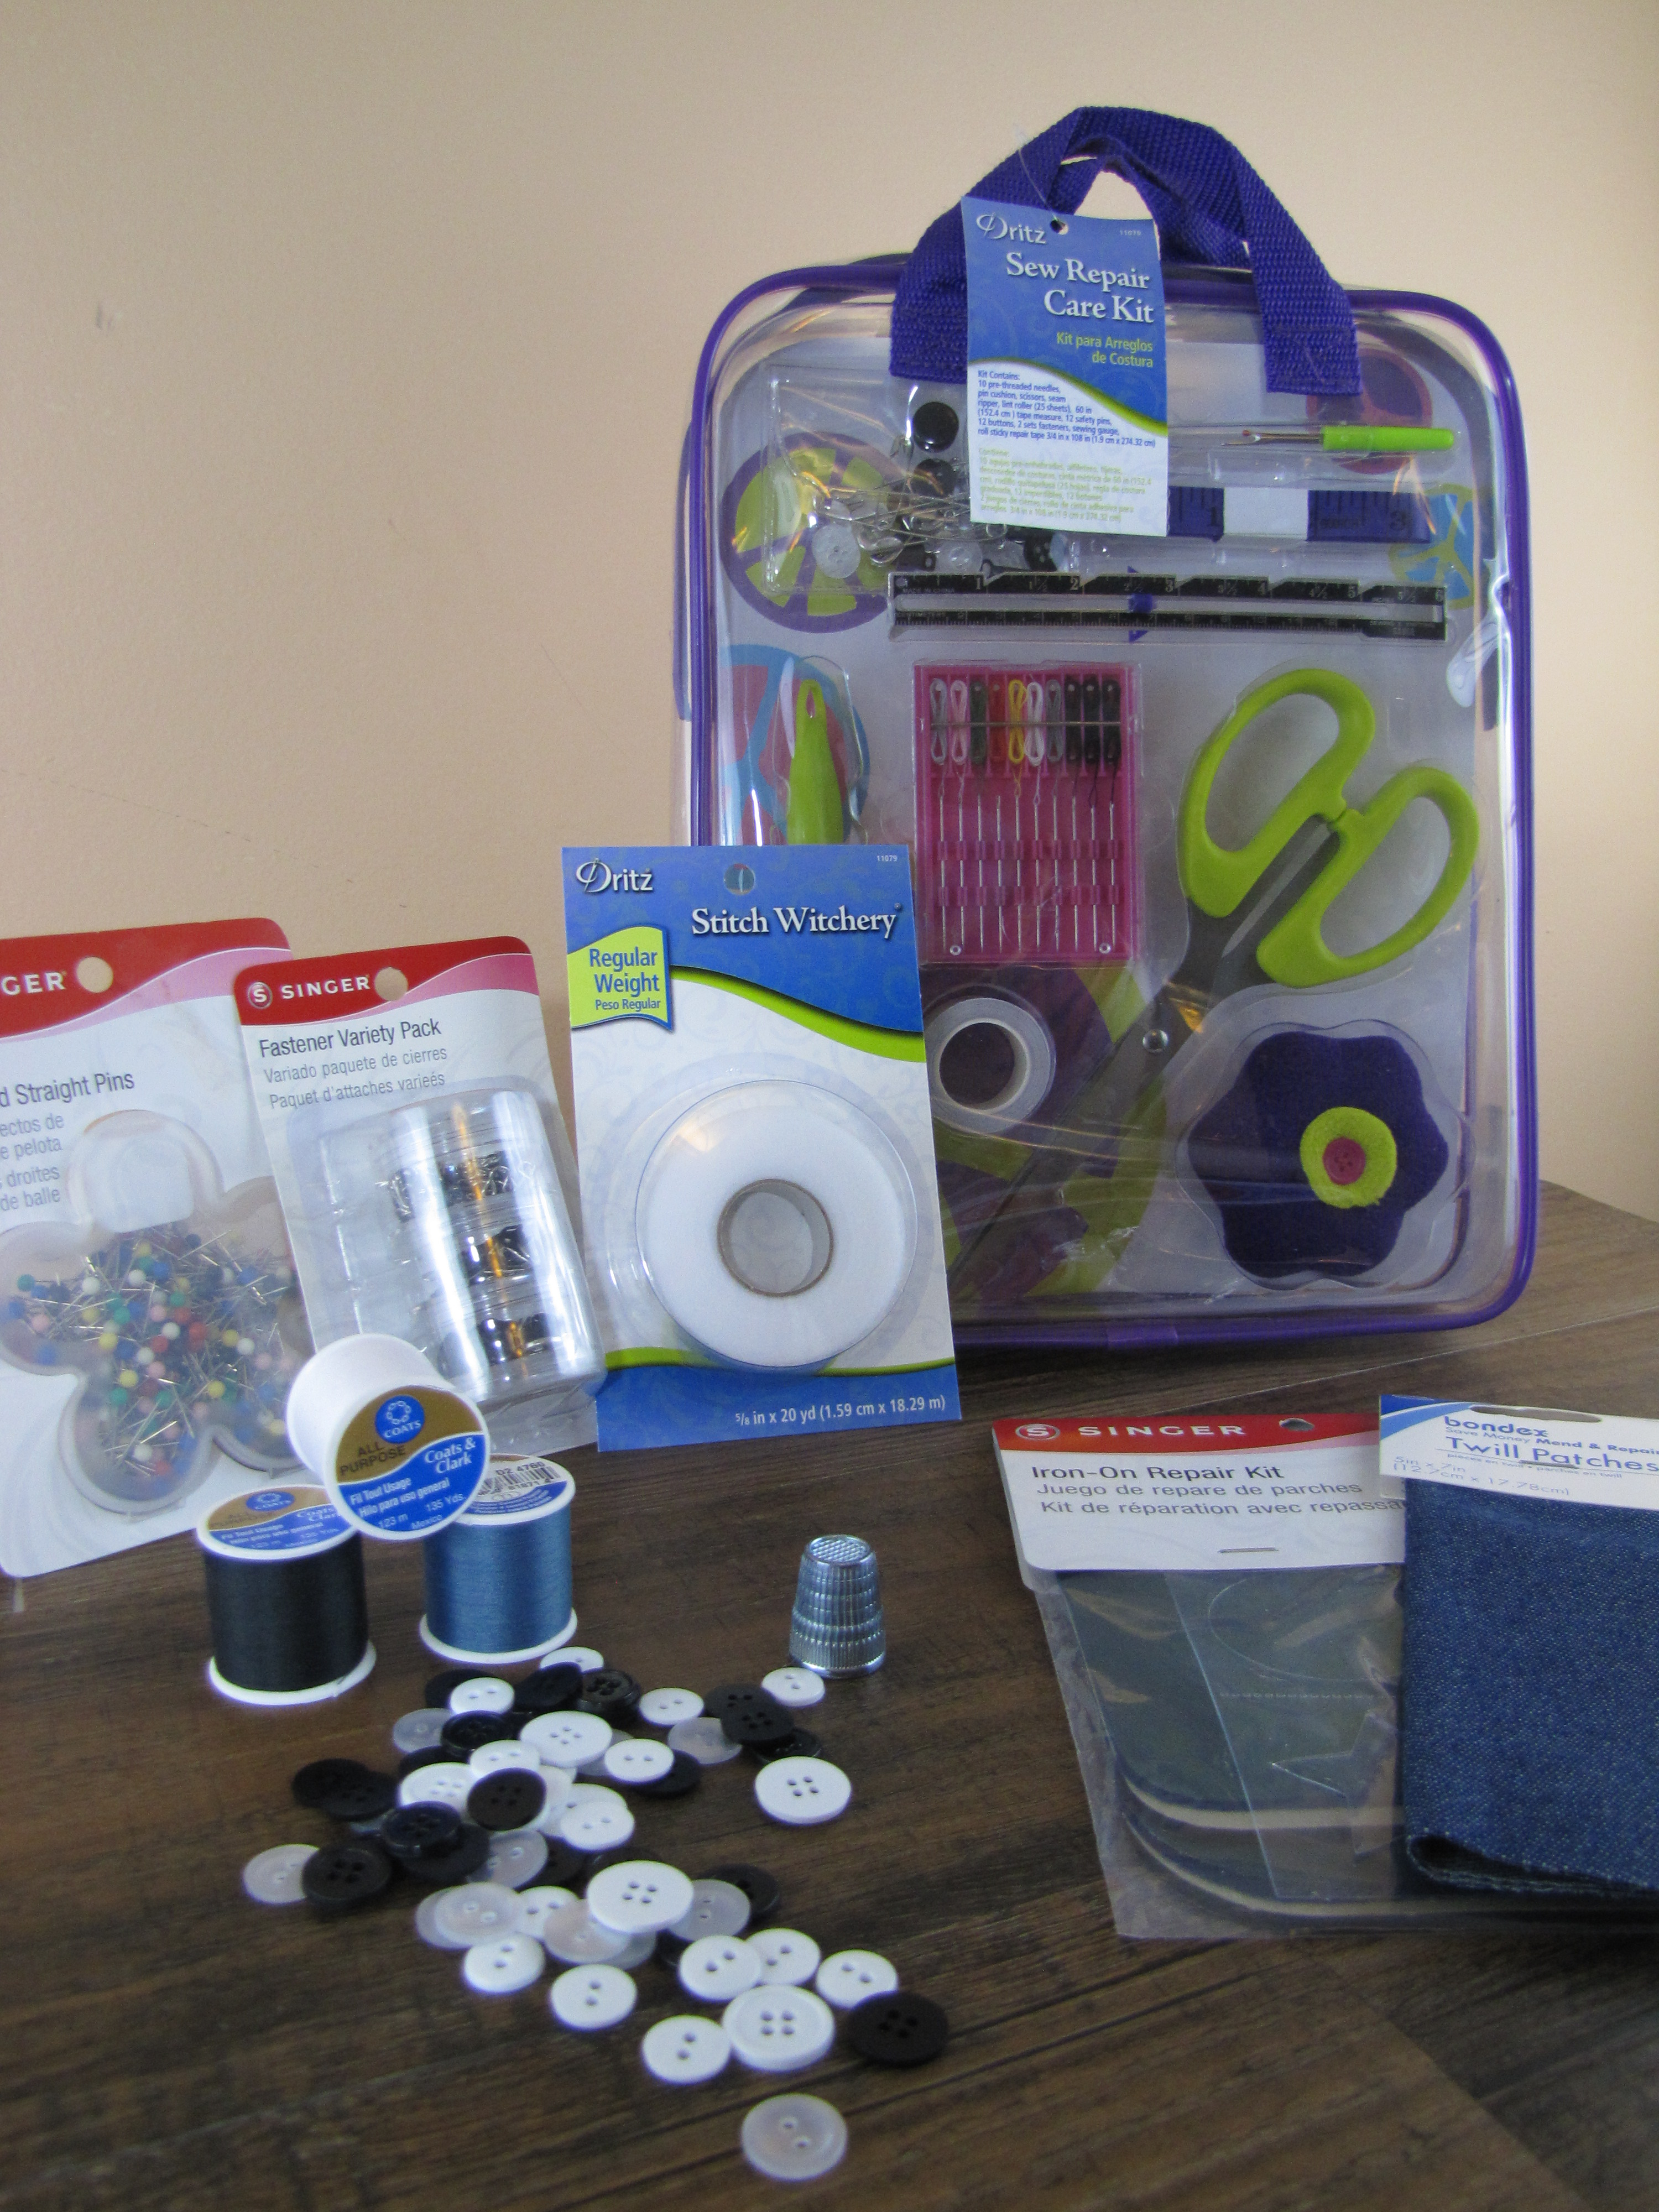 Sewing Supplies: Sewing Supplies At Walmart